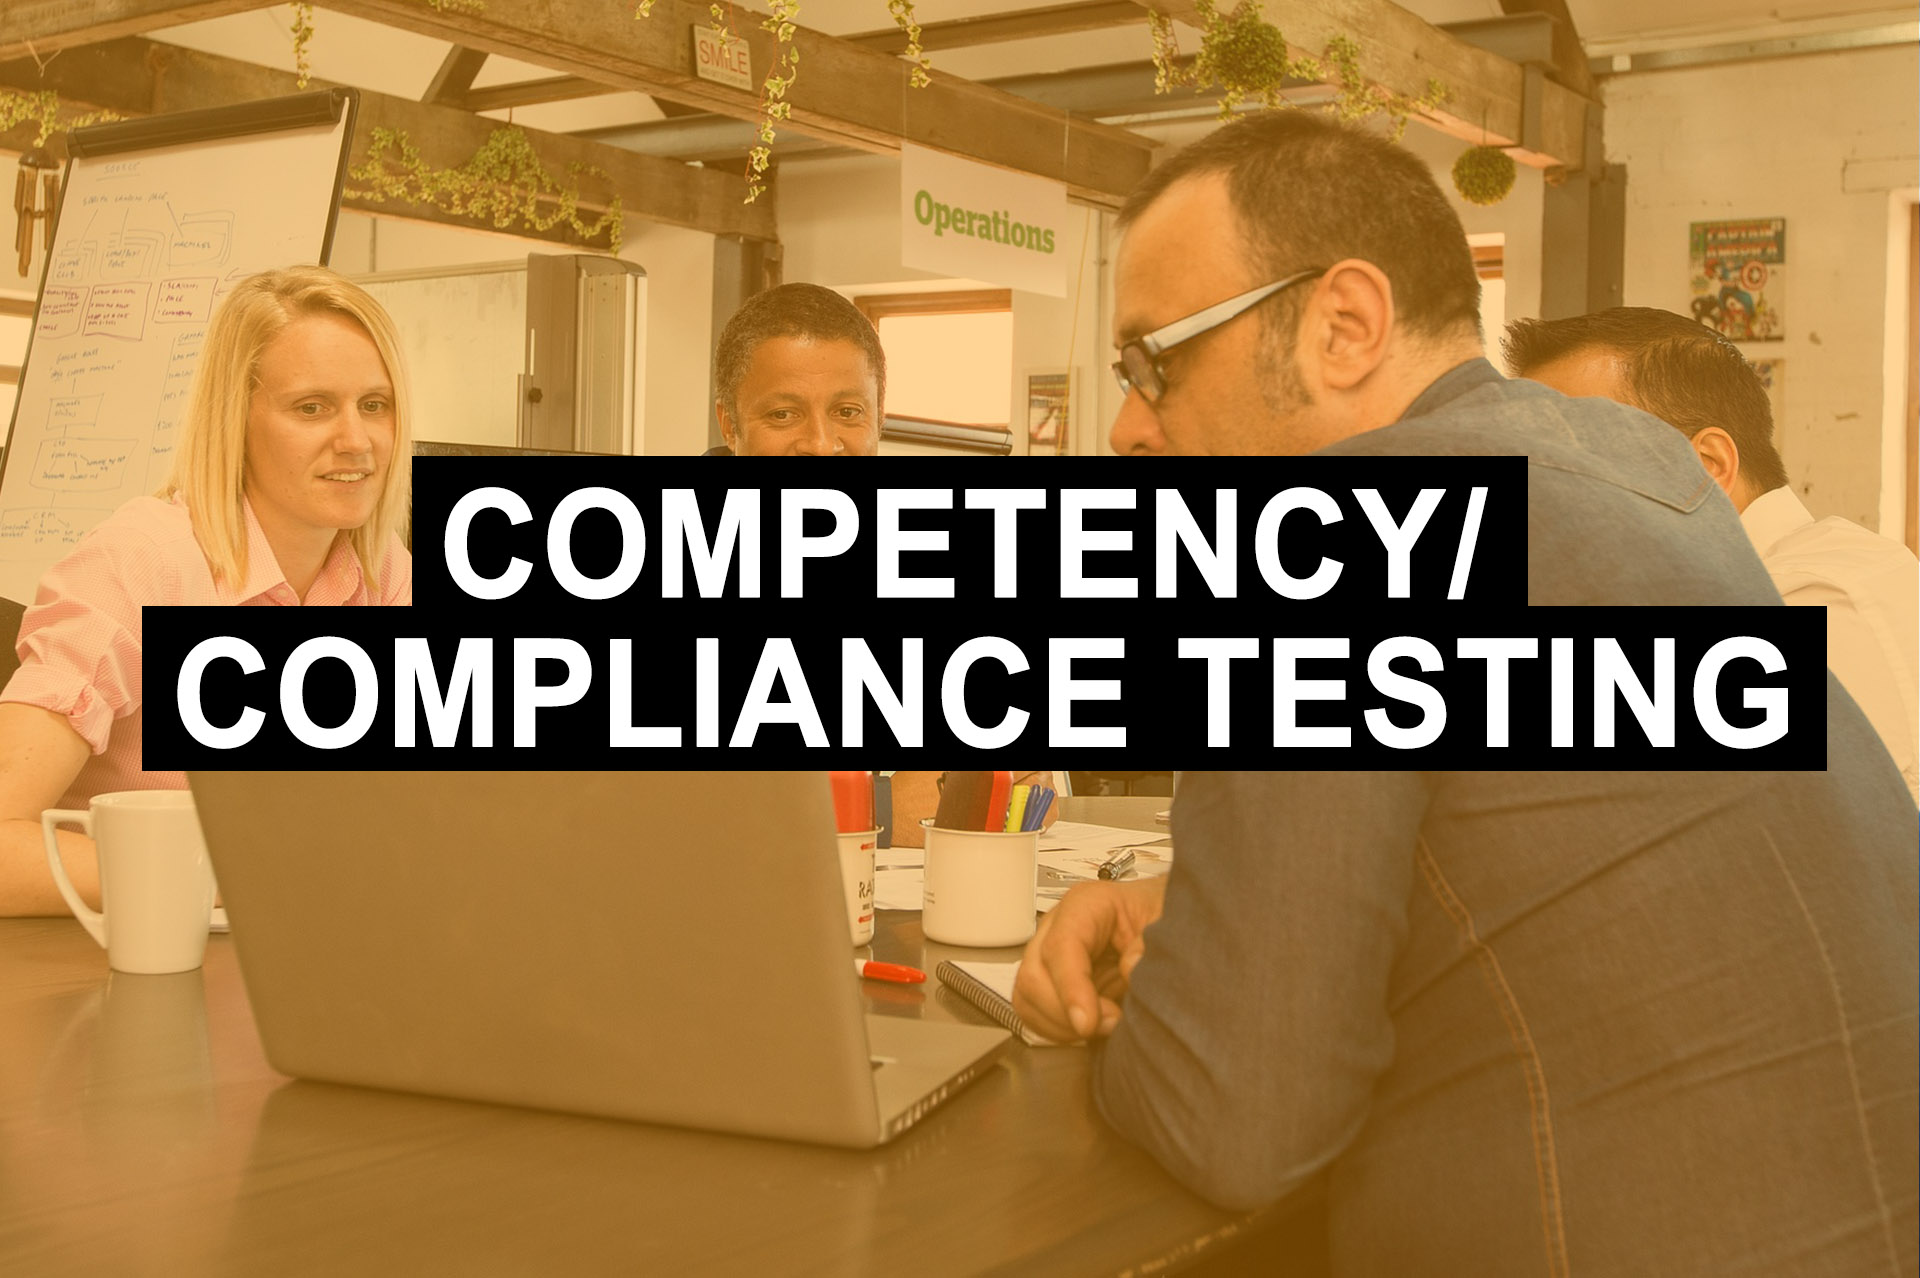 COMPETENCY_COMPLIANCE_TESTING